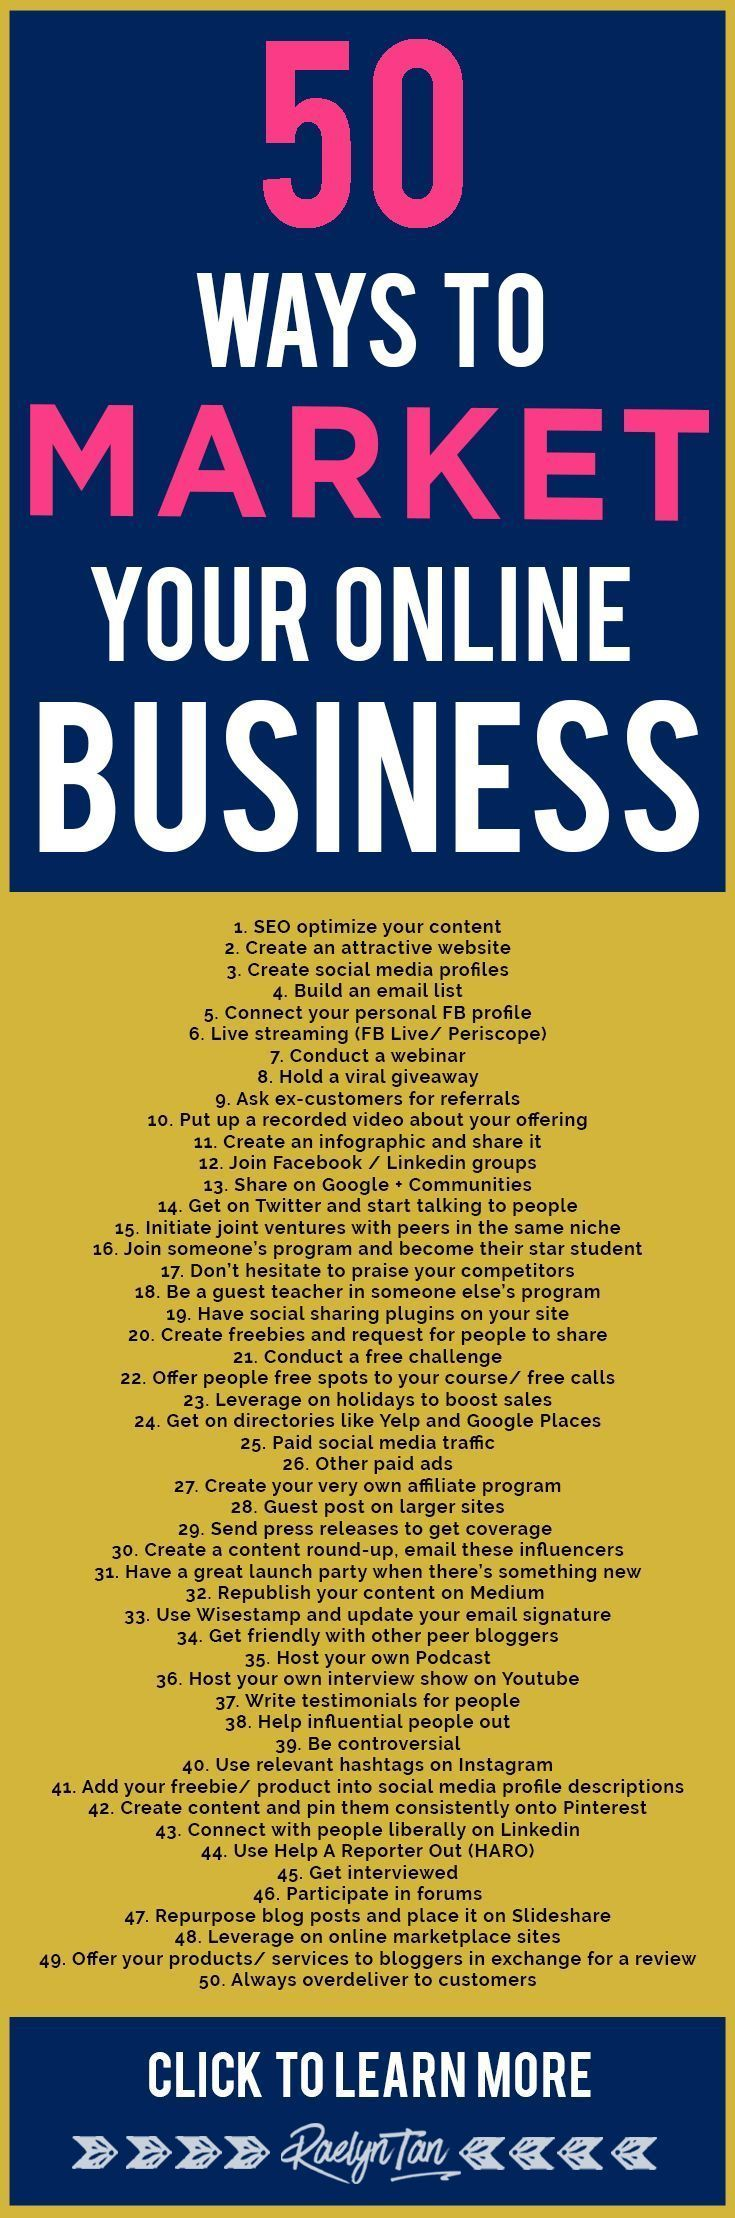 How to market your online business: 50 marketing tips and ideas to successfully make money as an online entrepreneur. #onlinebusiness #startup #entrepreneur